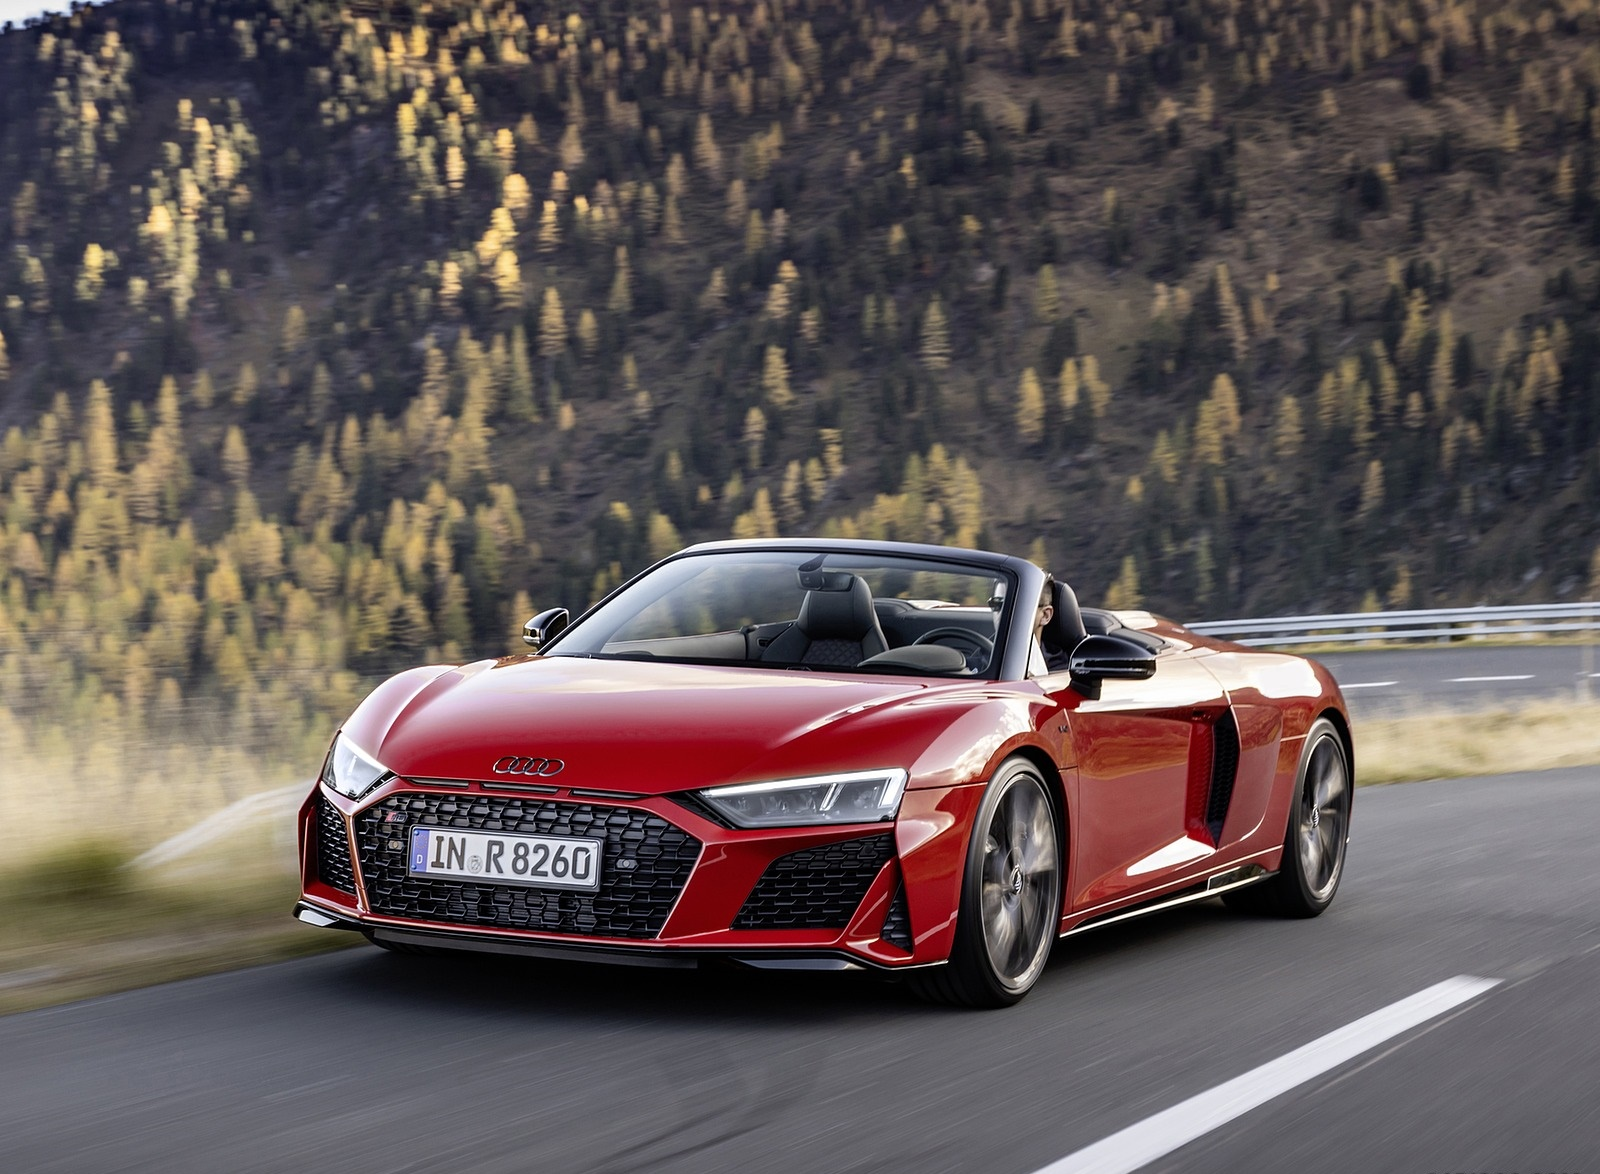 2020 Audi R8 V10 RWD Spyder (Color: Tango Red) Front Three-Quarter Wallpapers (2)